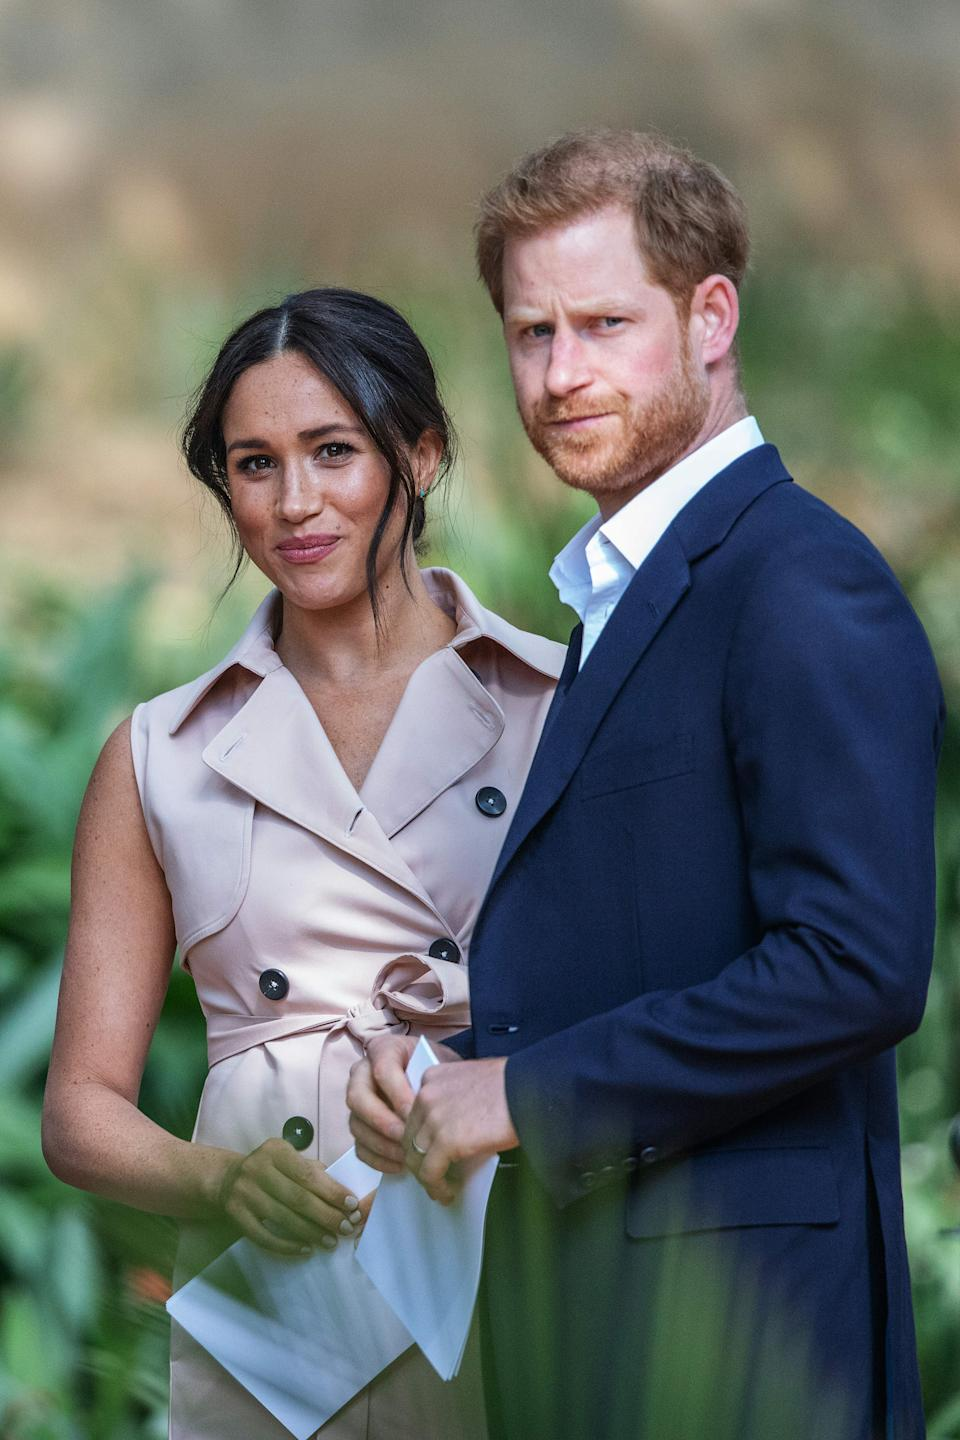 Prince Harry, Duke of Sussex(R) and Meghan, the Duchess of Sussex(L) arrive at the British High Commissioner residency in Johannesburg where they  will meet with Graca Machel, widow of former South African president Nelson Mandela,